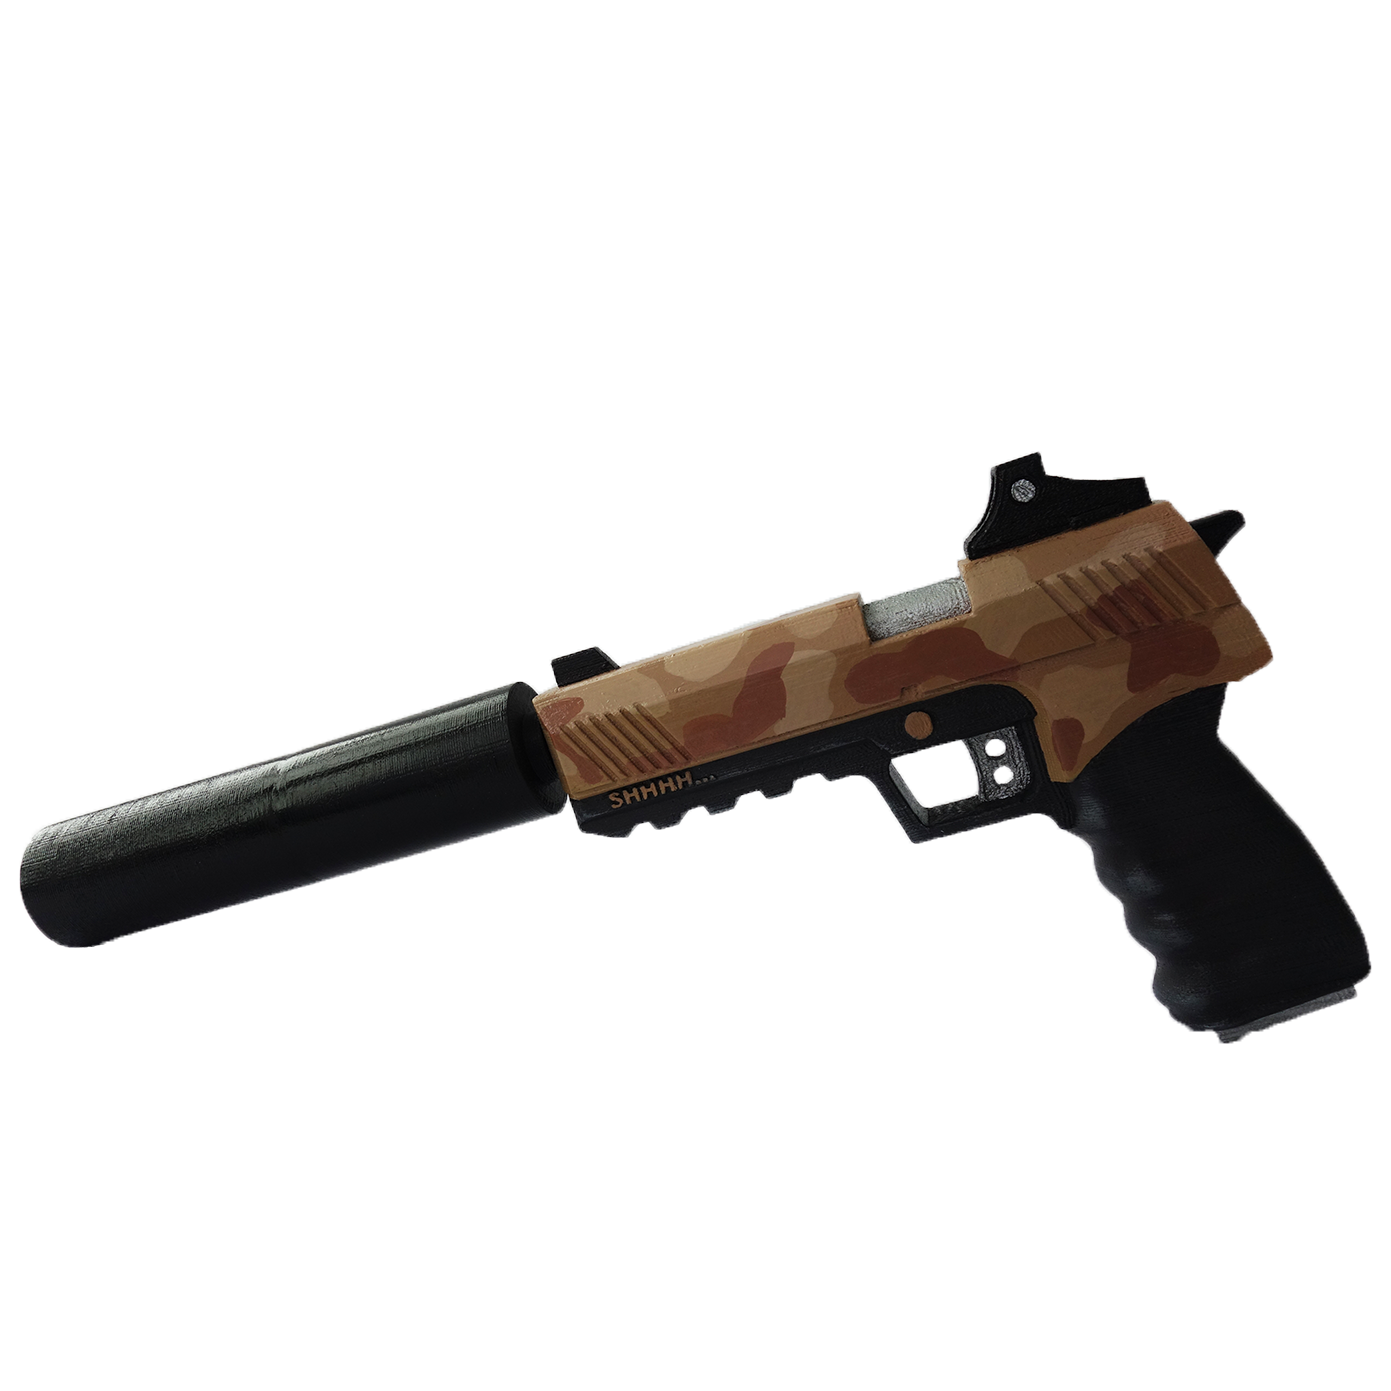 Fortnite gun png. Suppressed pistol replica whisper